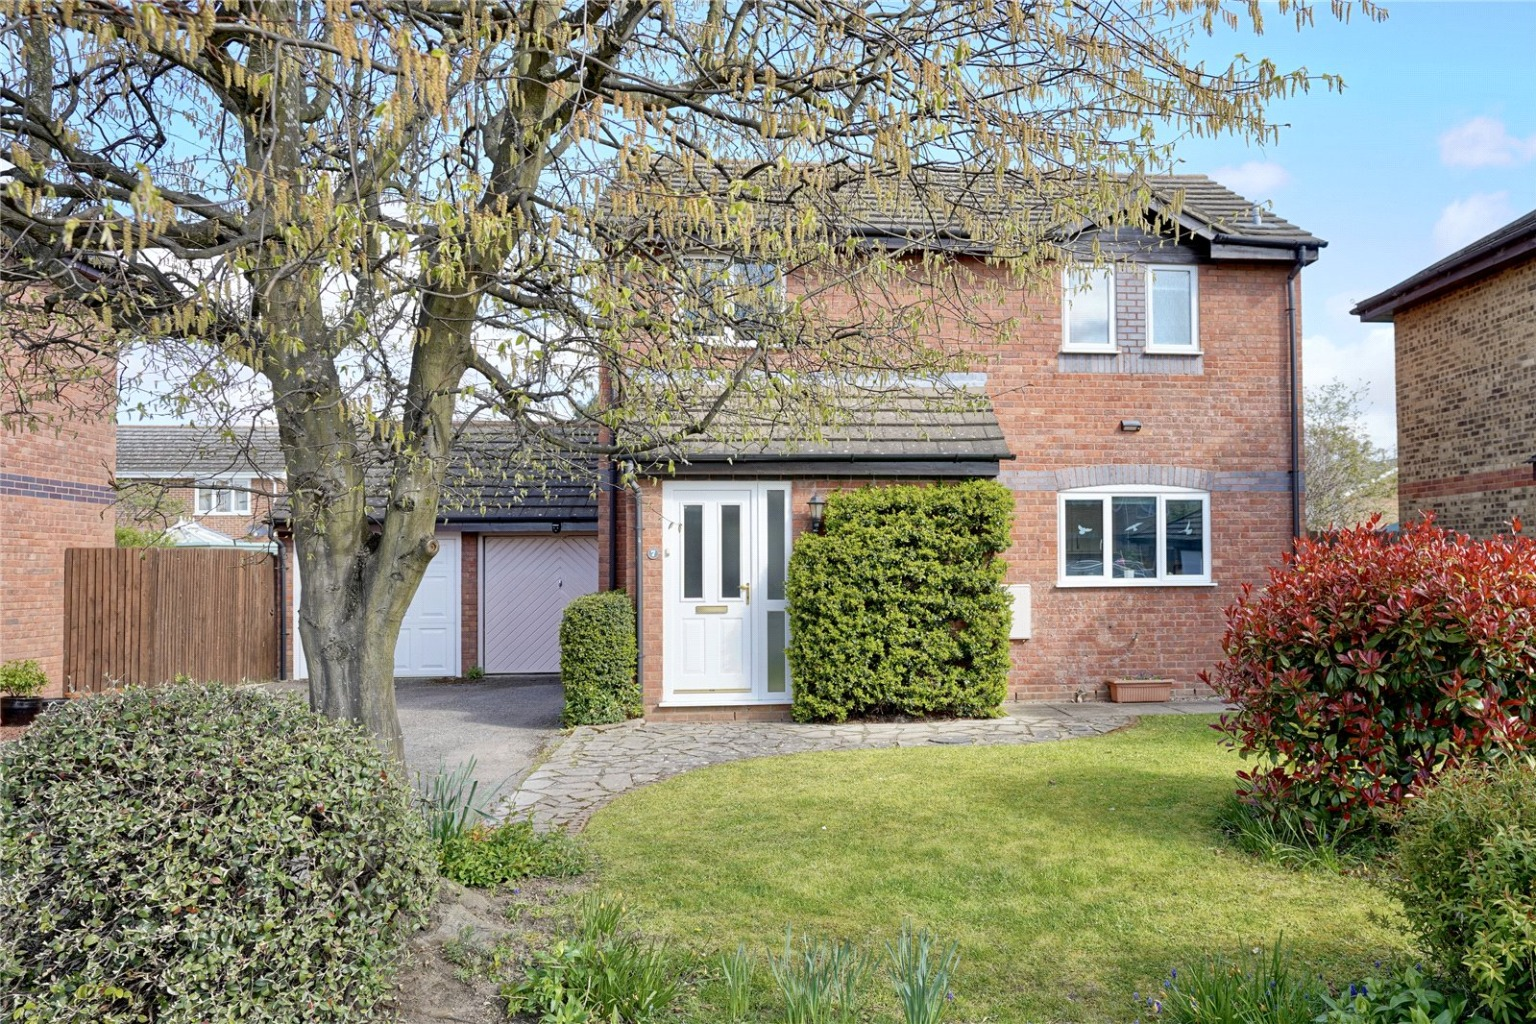 3 bed detached house for sale in Tintagel Court, St. Neots 0